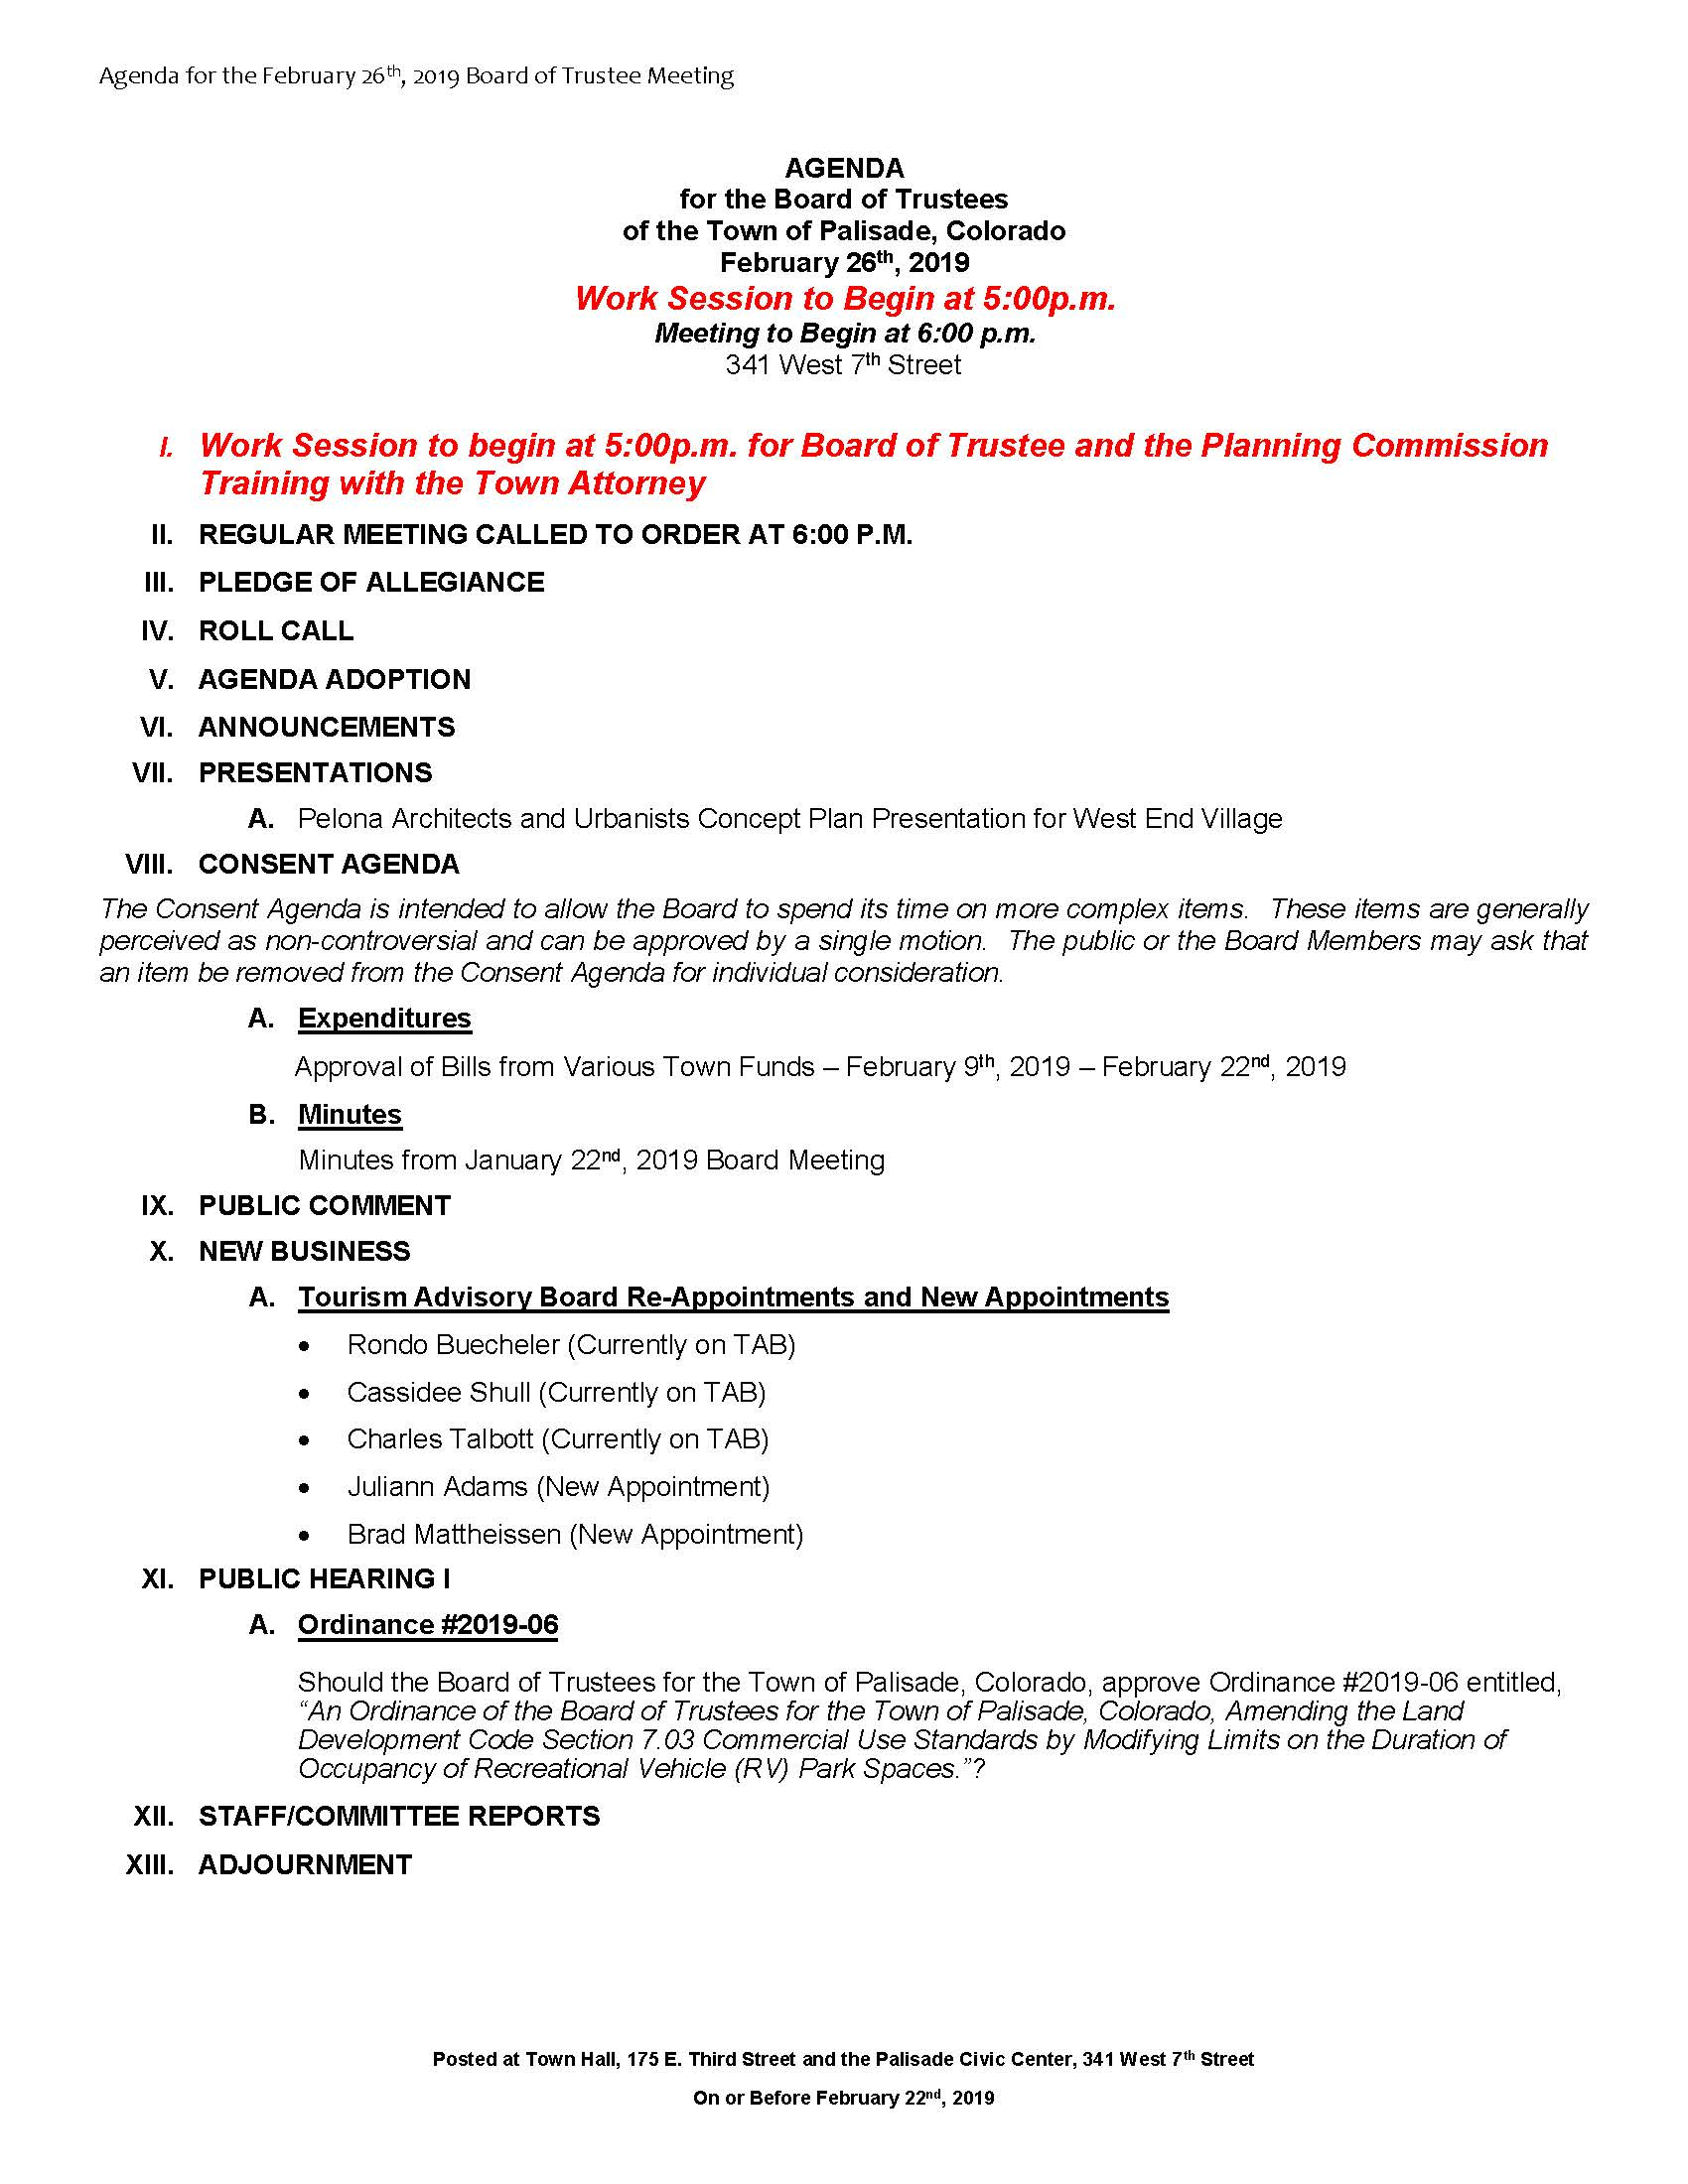 February 26th 2019 Board Meeting Agenda